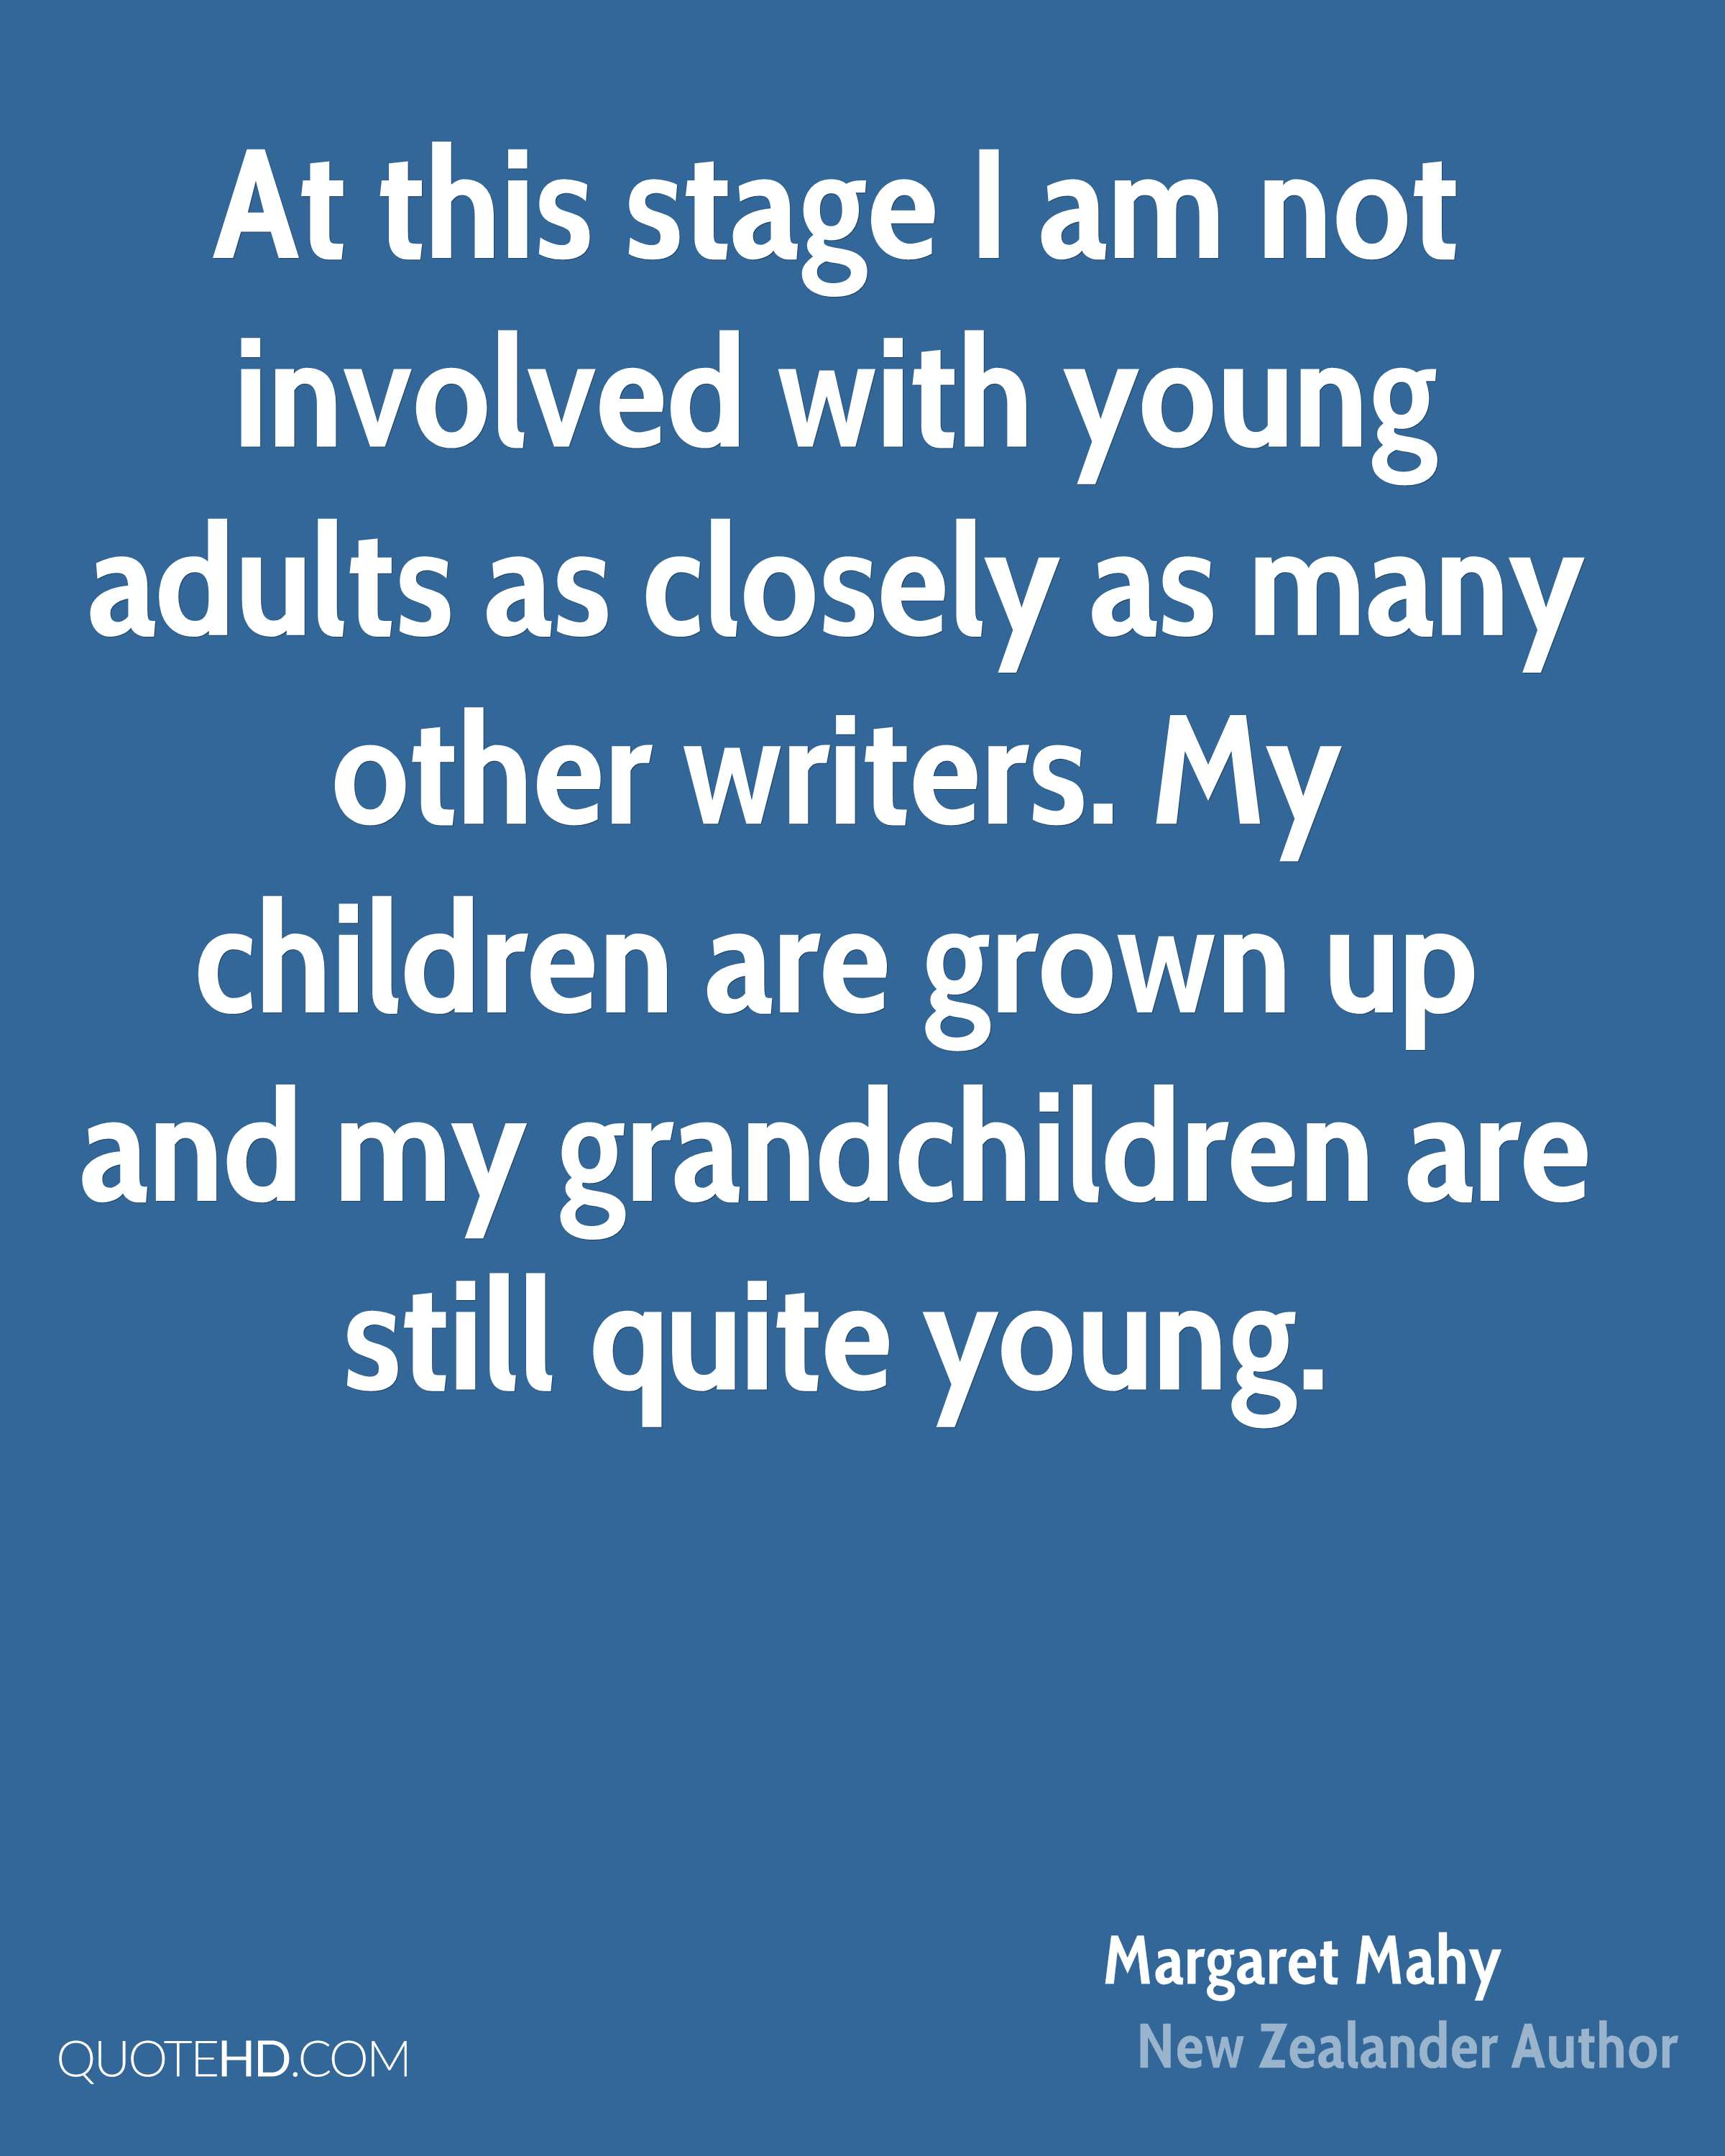 At this stage I am not involved with young adults as closely as many other writers. My children are grown up and my grandchildren are still quite young.